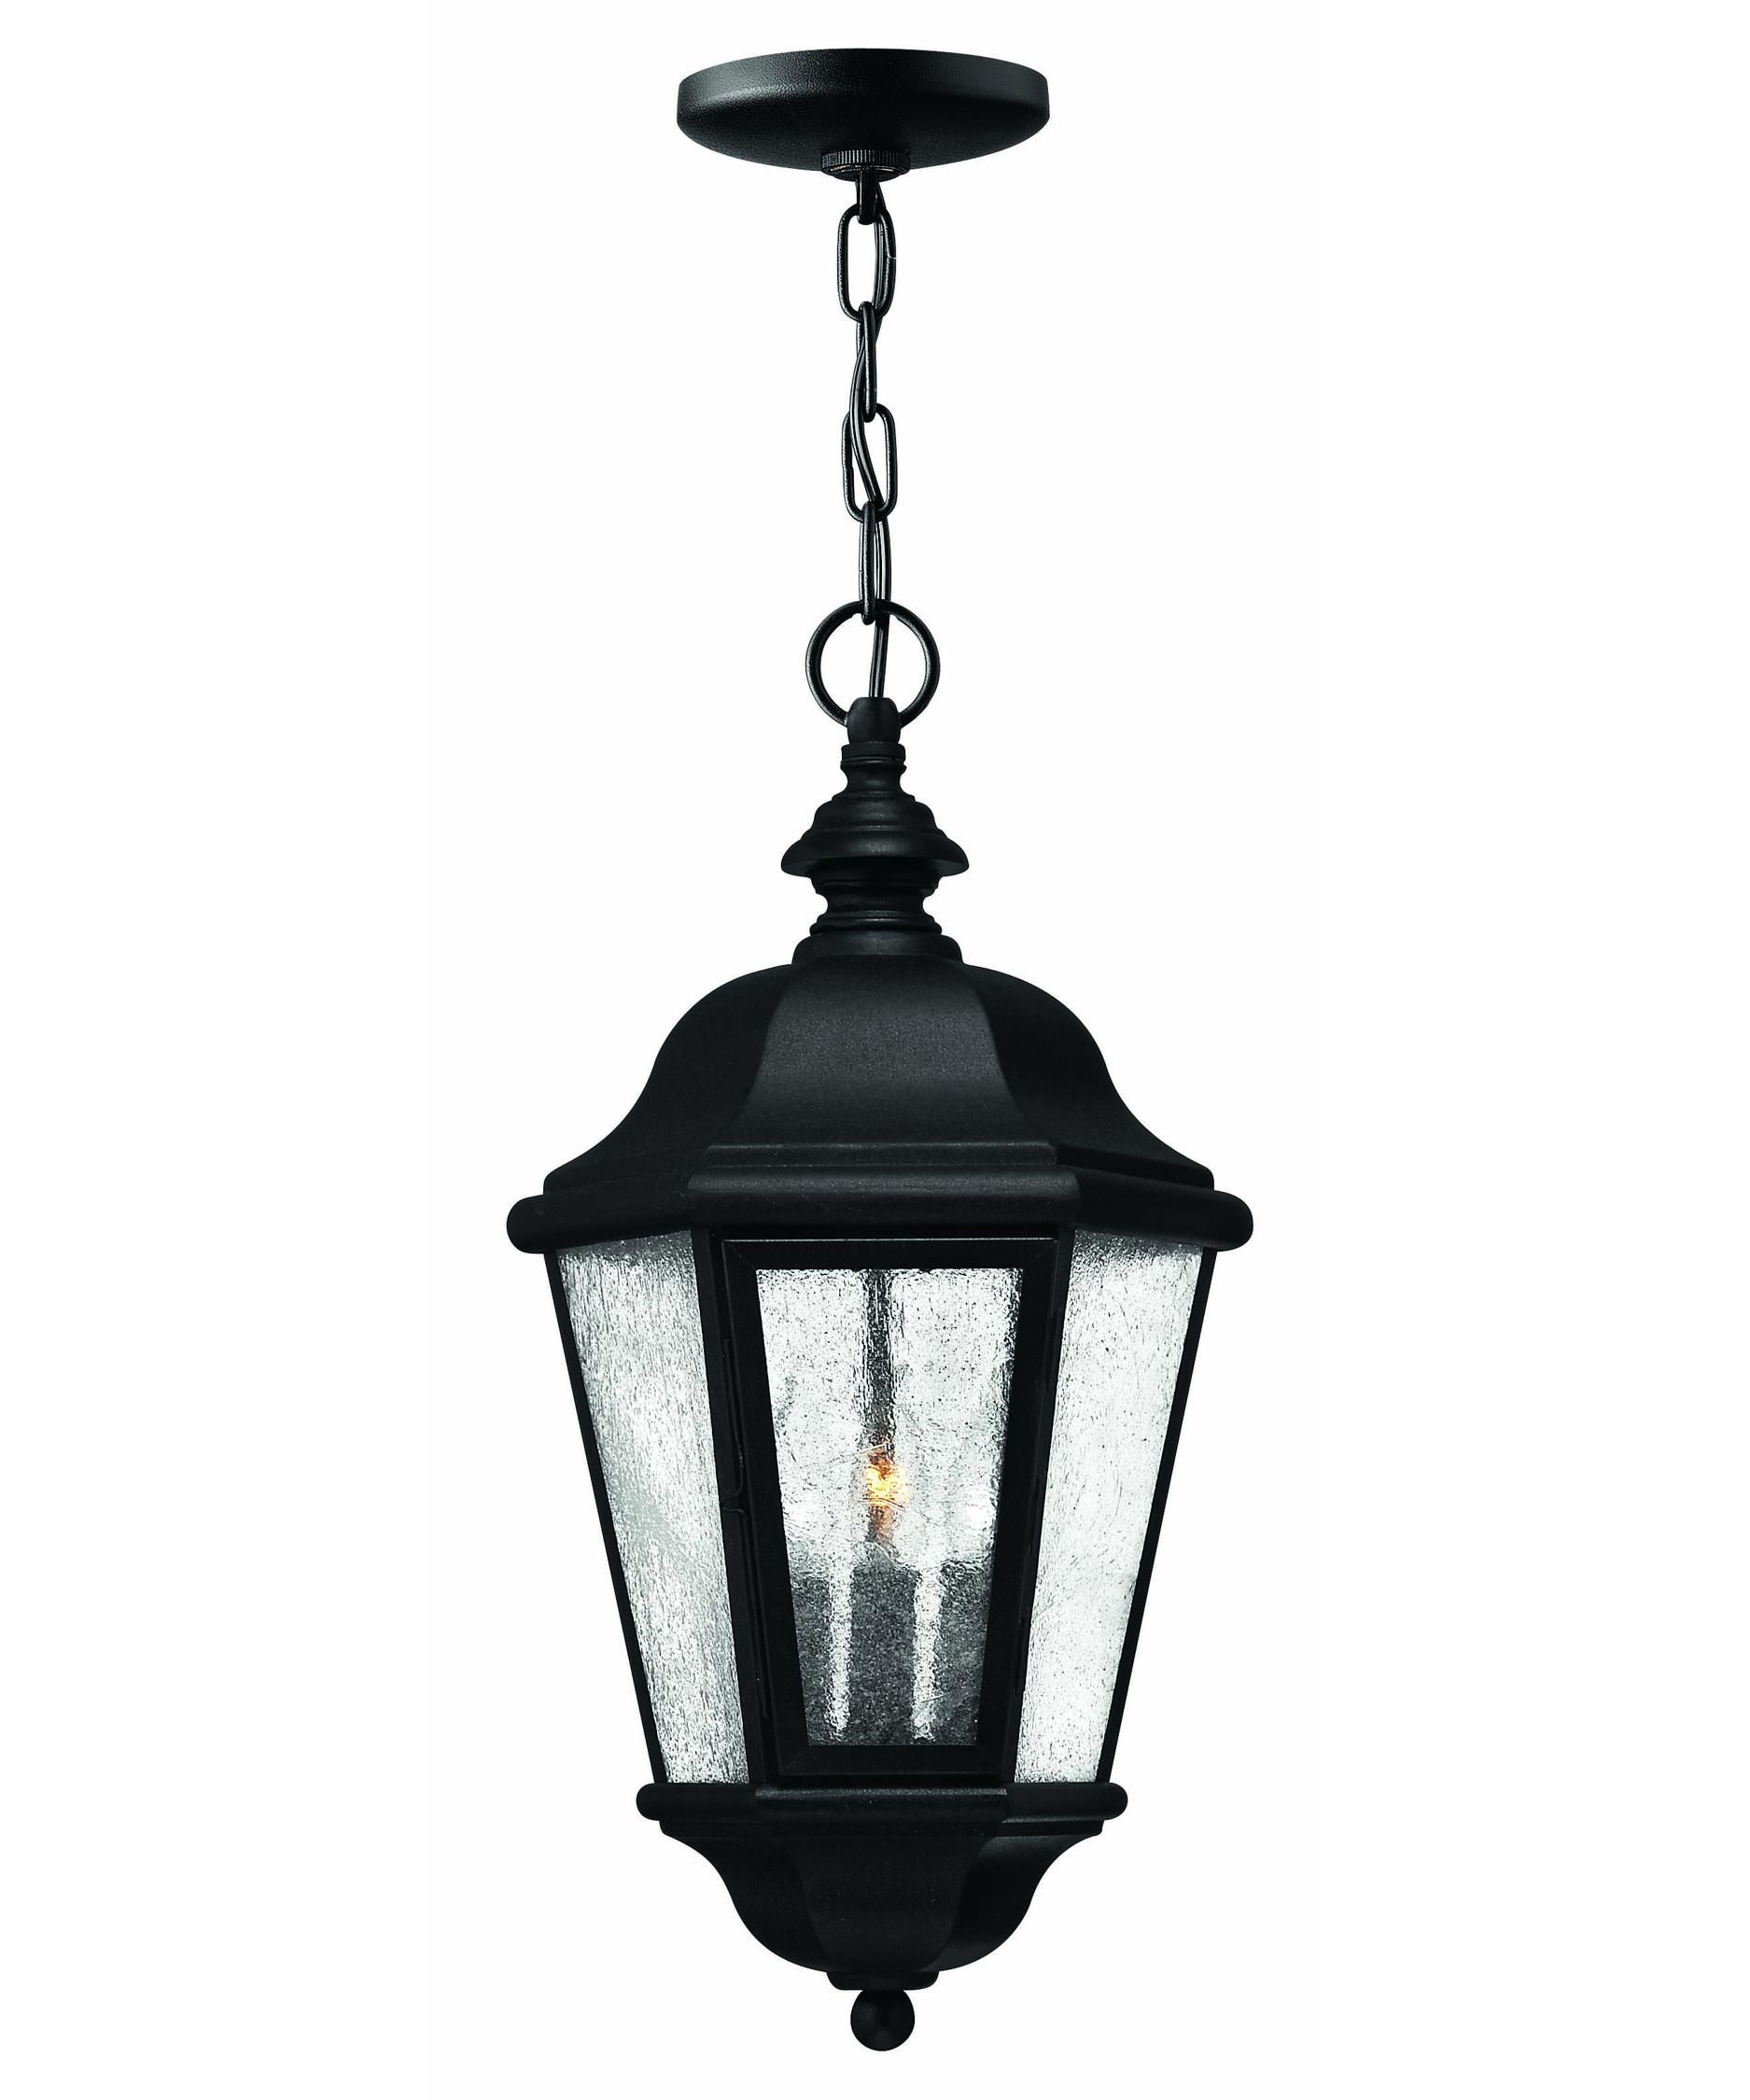 Hinkley Lighting 1672 Edgewater 10 Inch Wide 3 Light Outdoor Hanging With Outdoor Hanging Glass Lights (View 6 of 15)